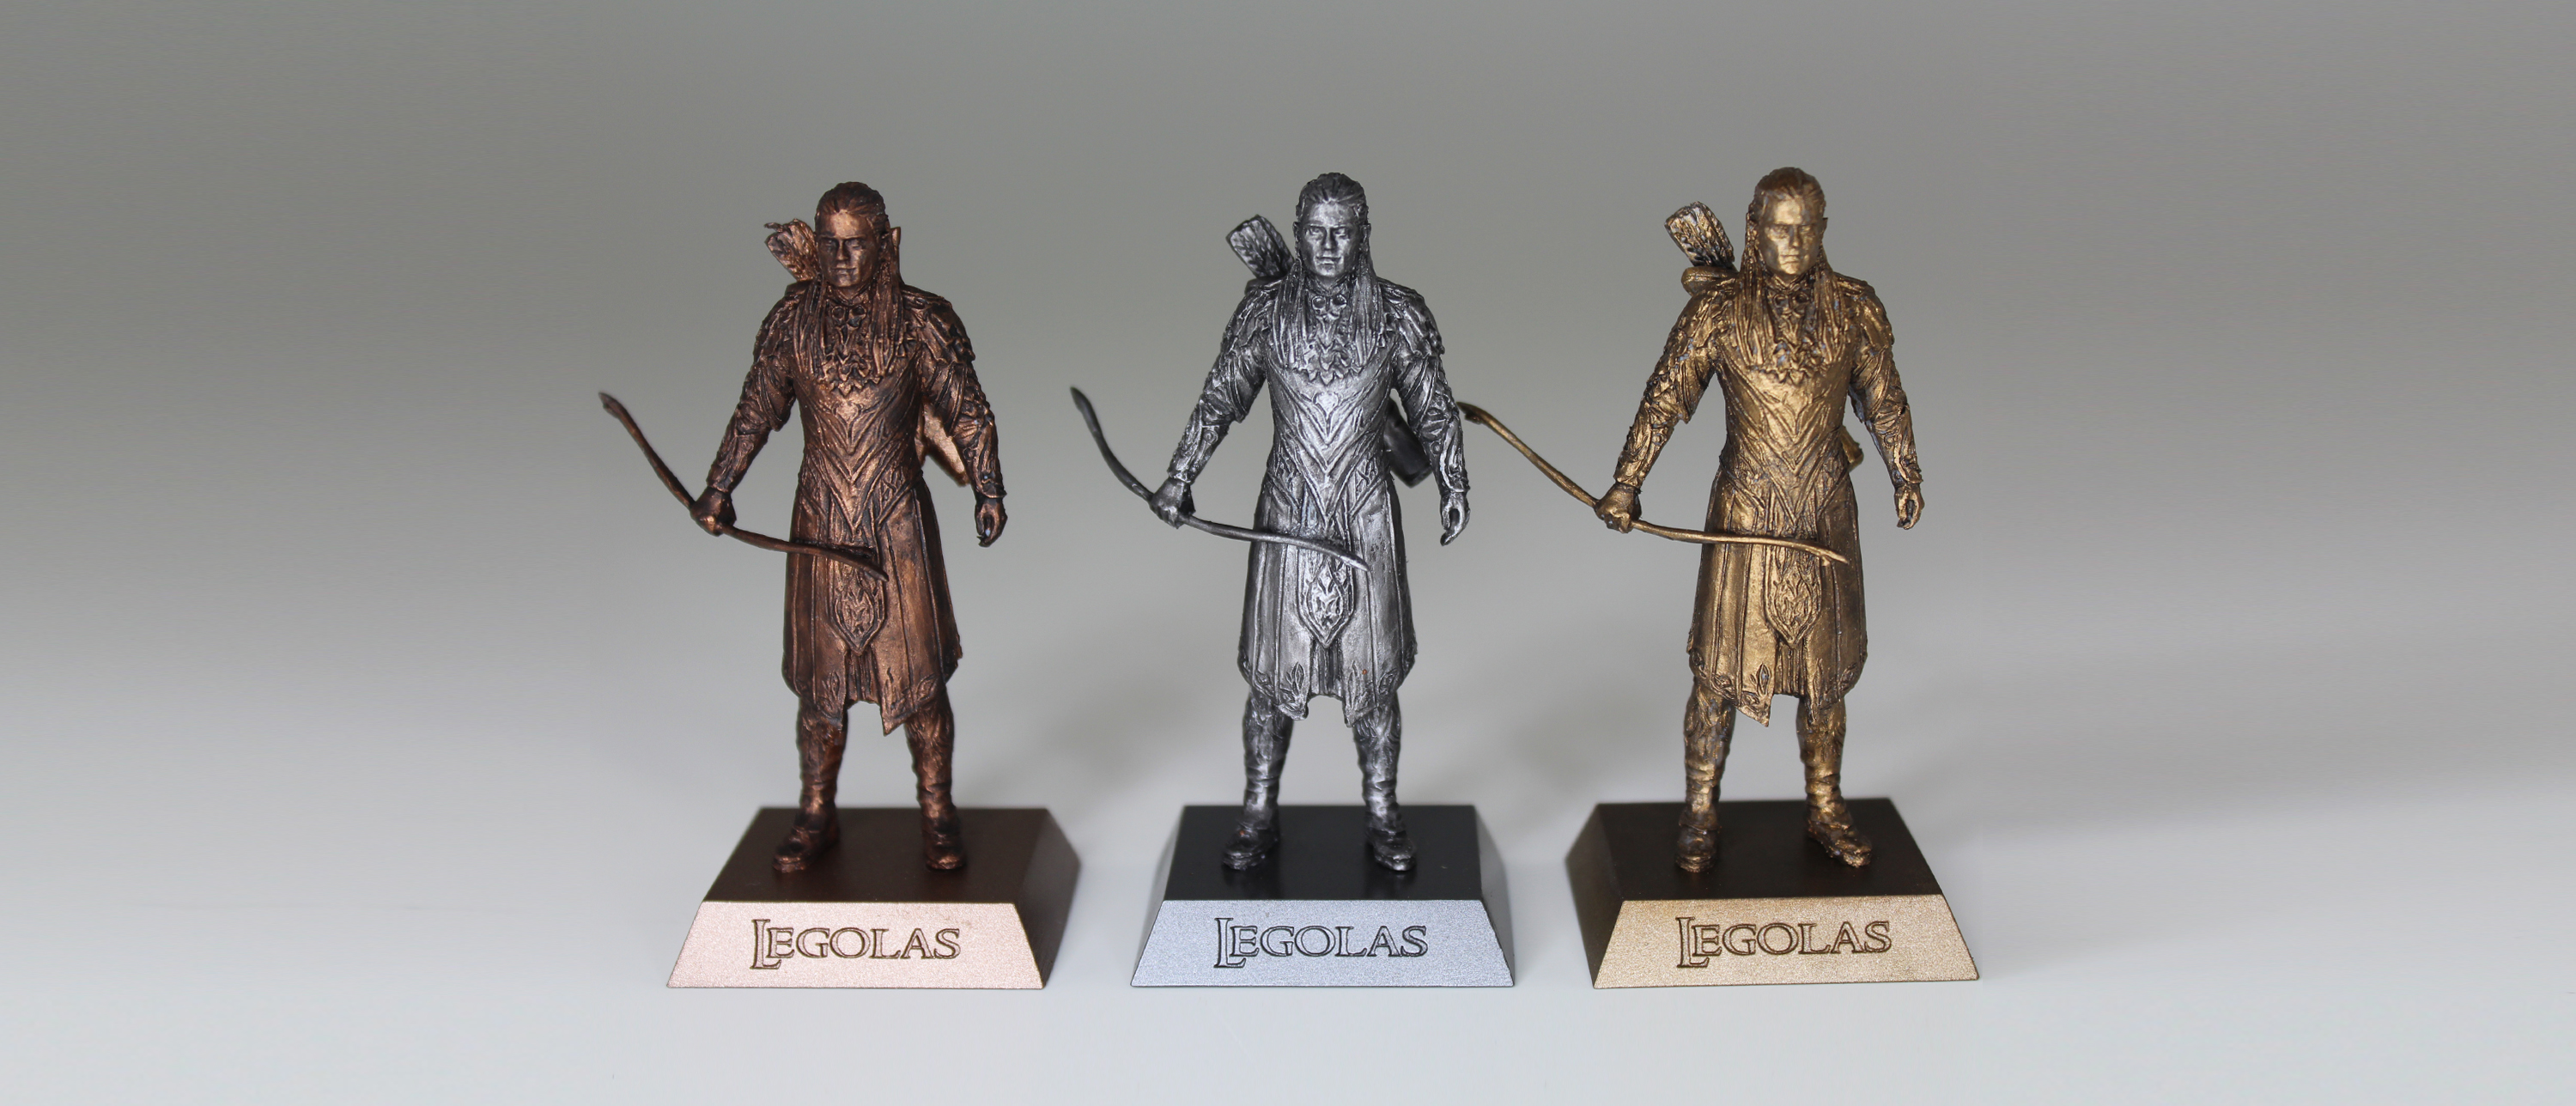 the hobbit sculptworks image 01